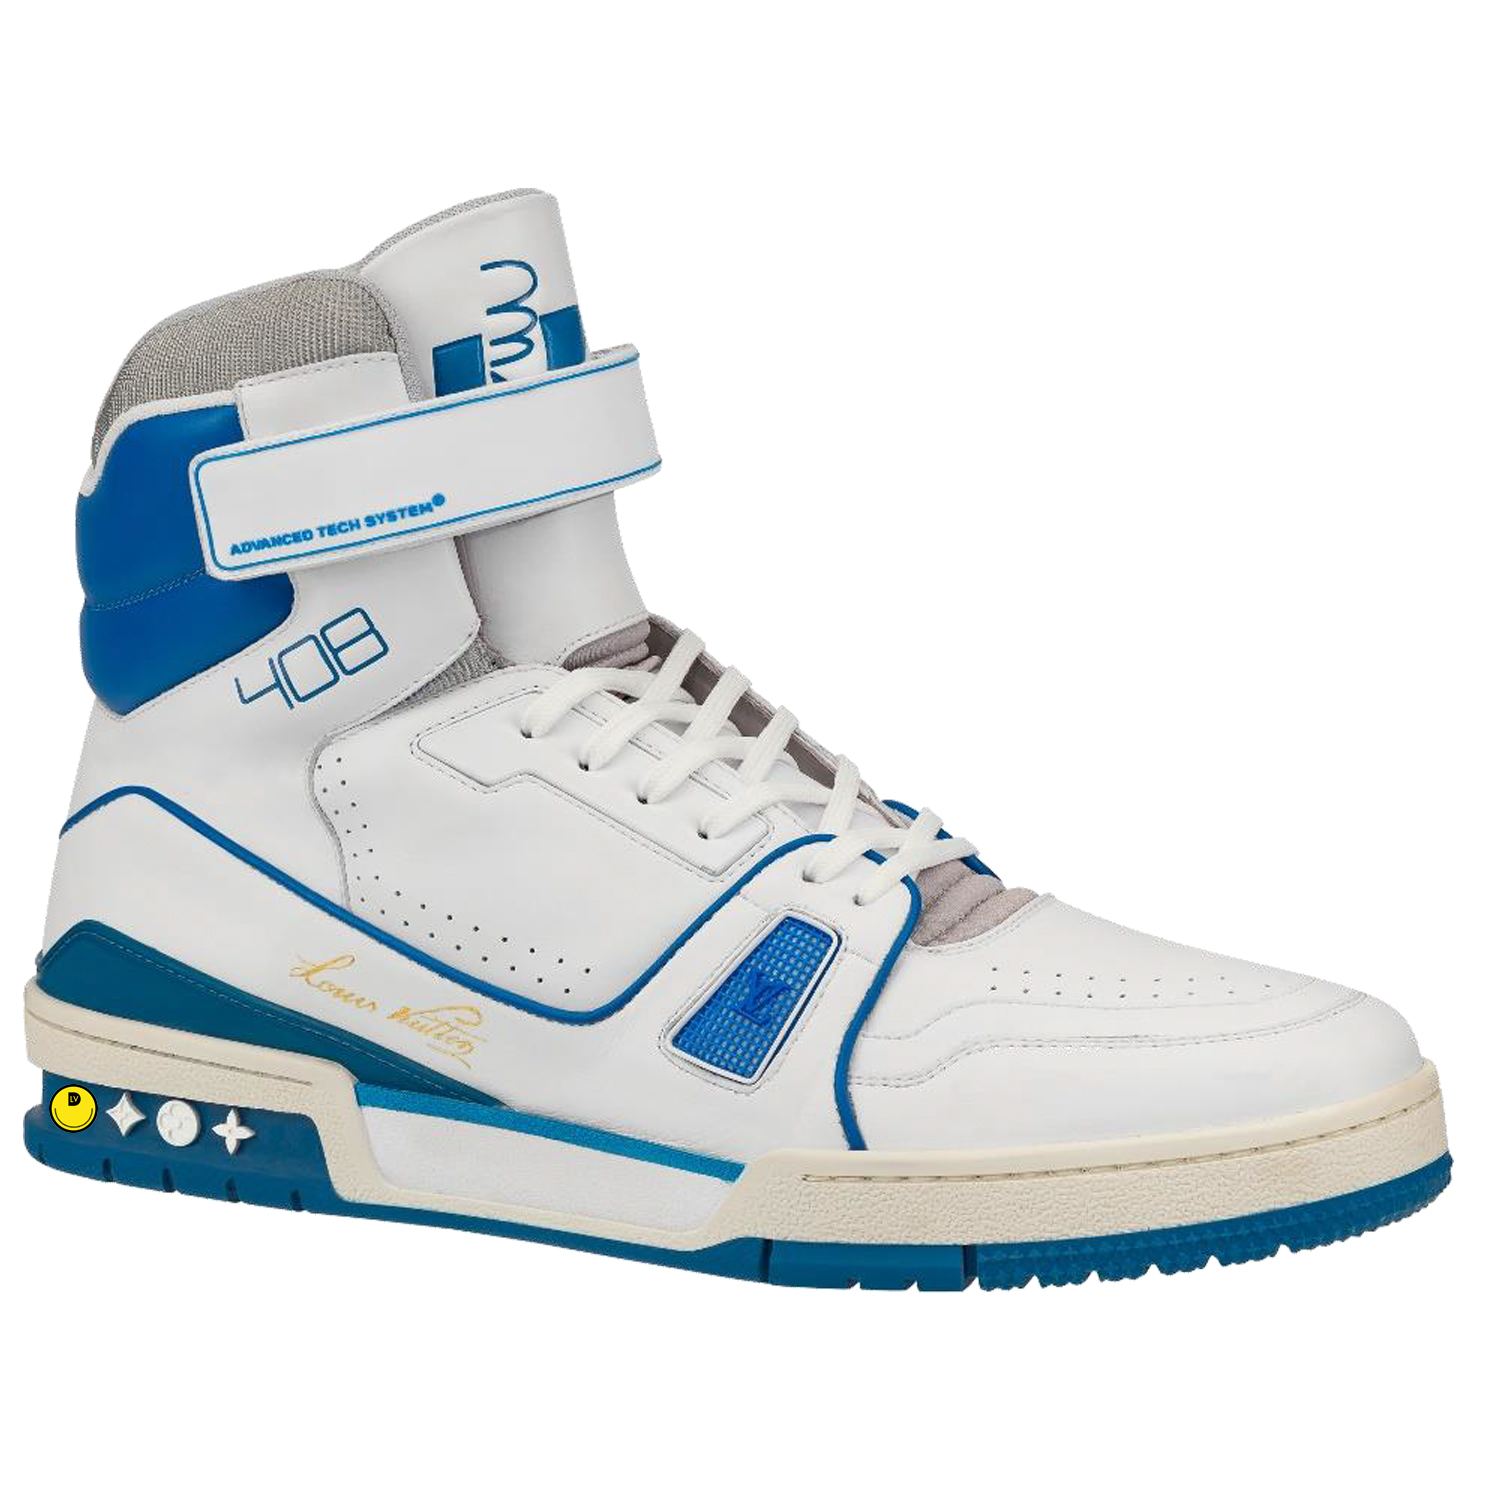 HIGH TOP SNEAKER - €1200 $16001A54J3BLEU